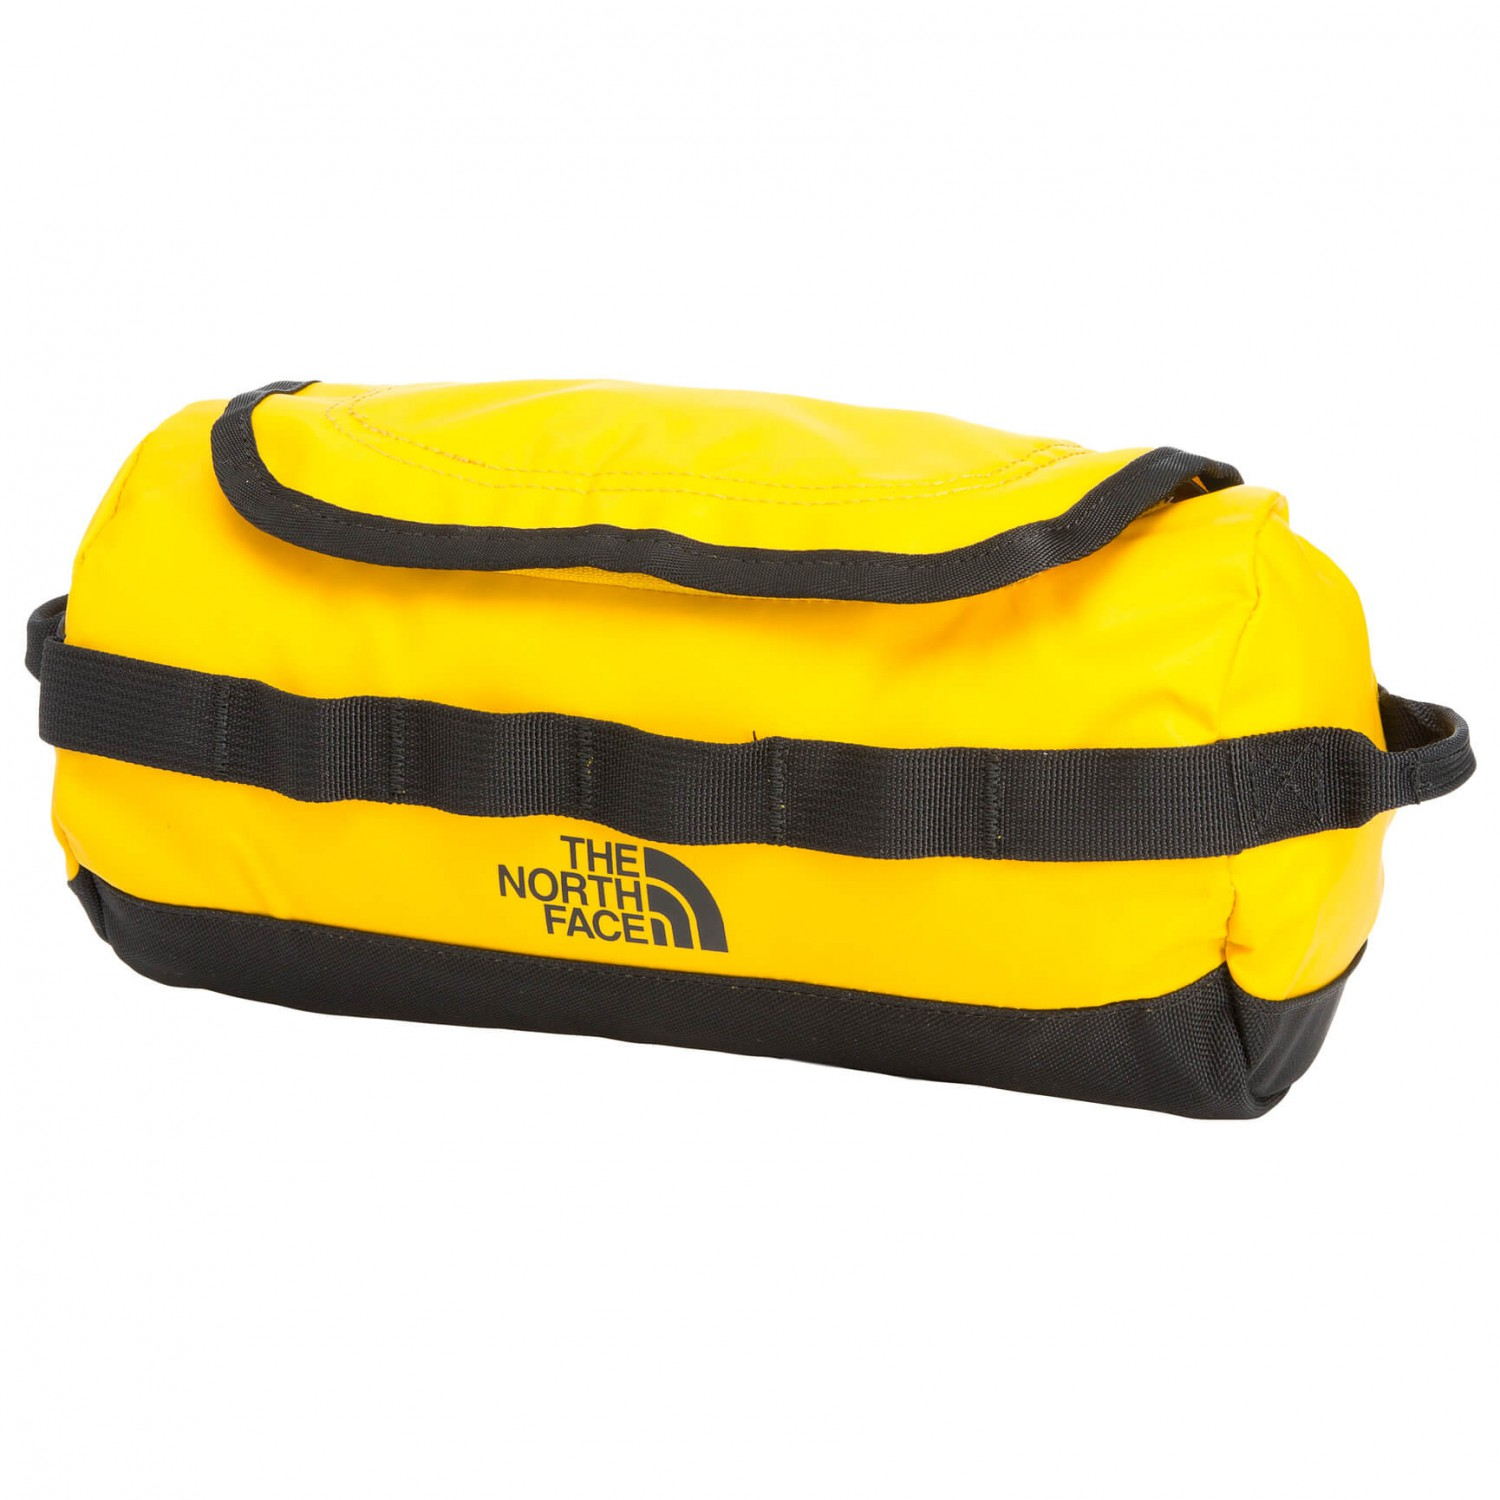 2e6171d8e90 The North Face Base Camp Travel Canister - Toiletries Bag   Buy ...